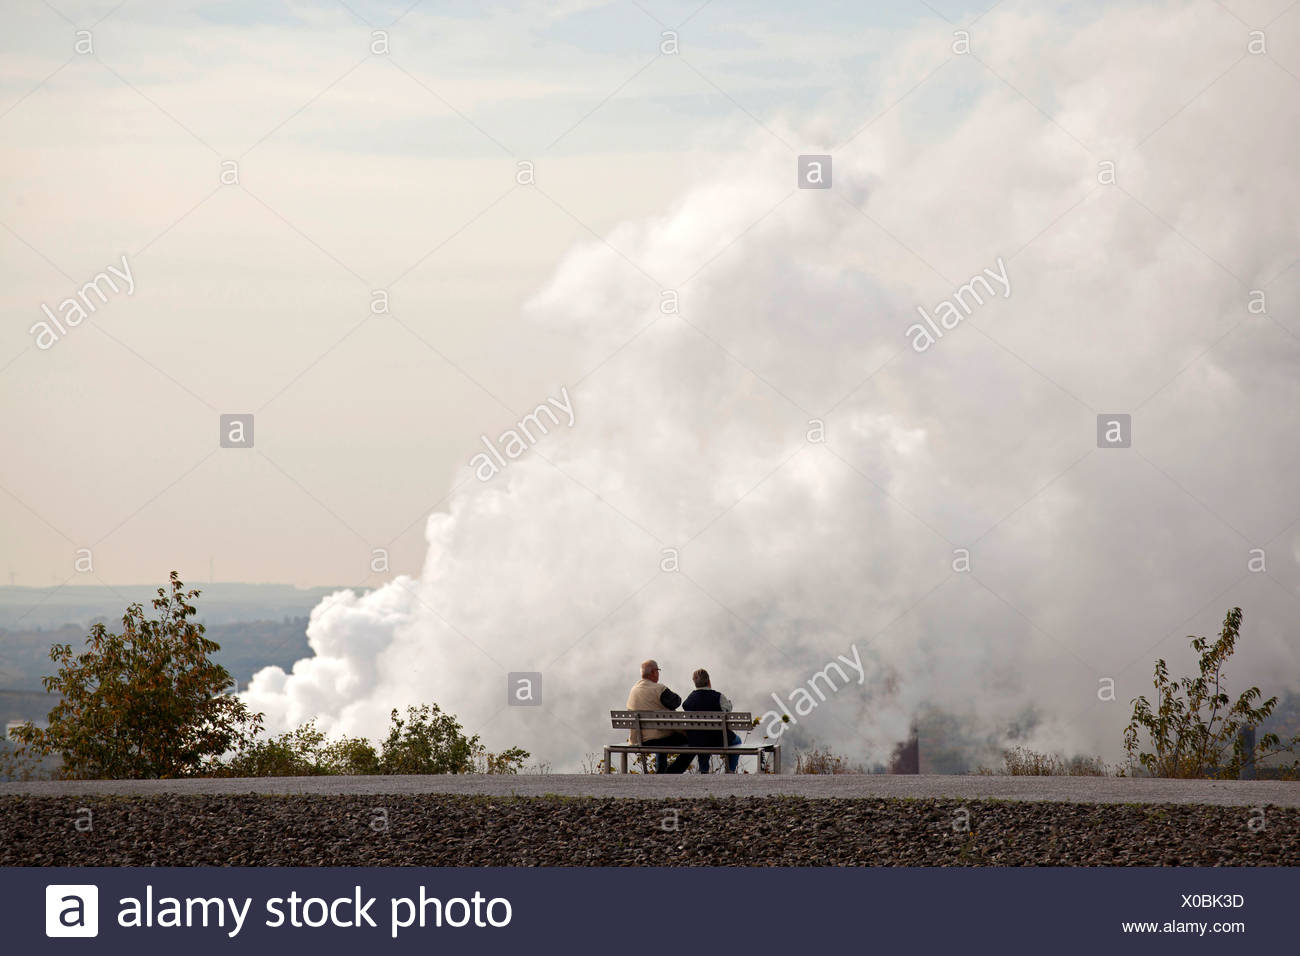 Couple on a bench in front of air pollution from a power plant in Bottrop, Ruhr Area, North Rhine-Westphalia - Stock Image